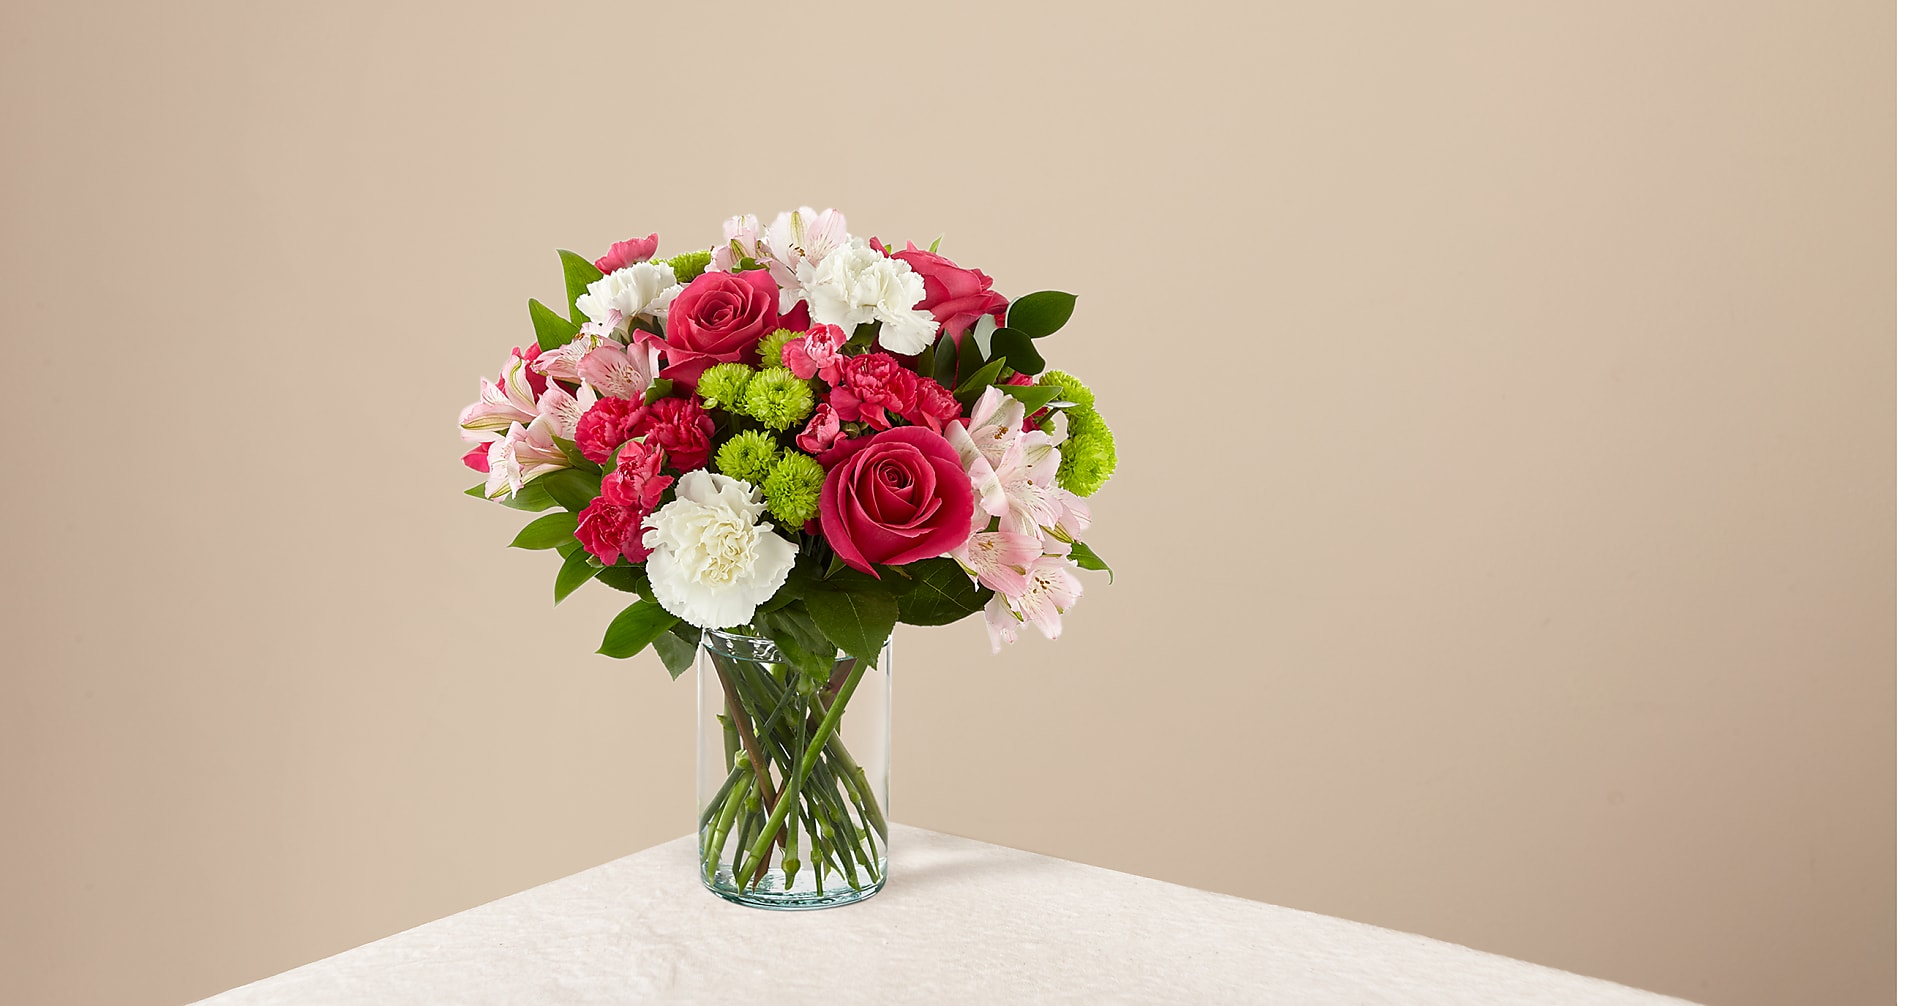 Sweet & Pretty Bouquet - Image 1 Of 5